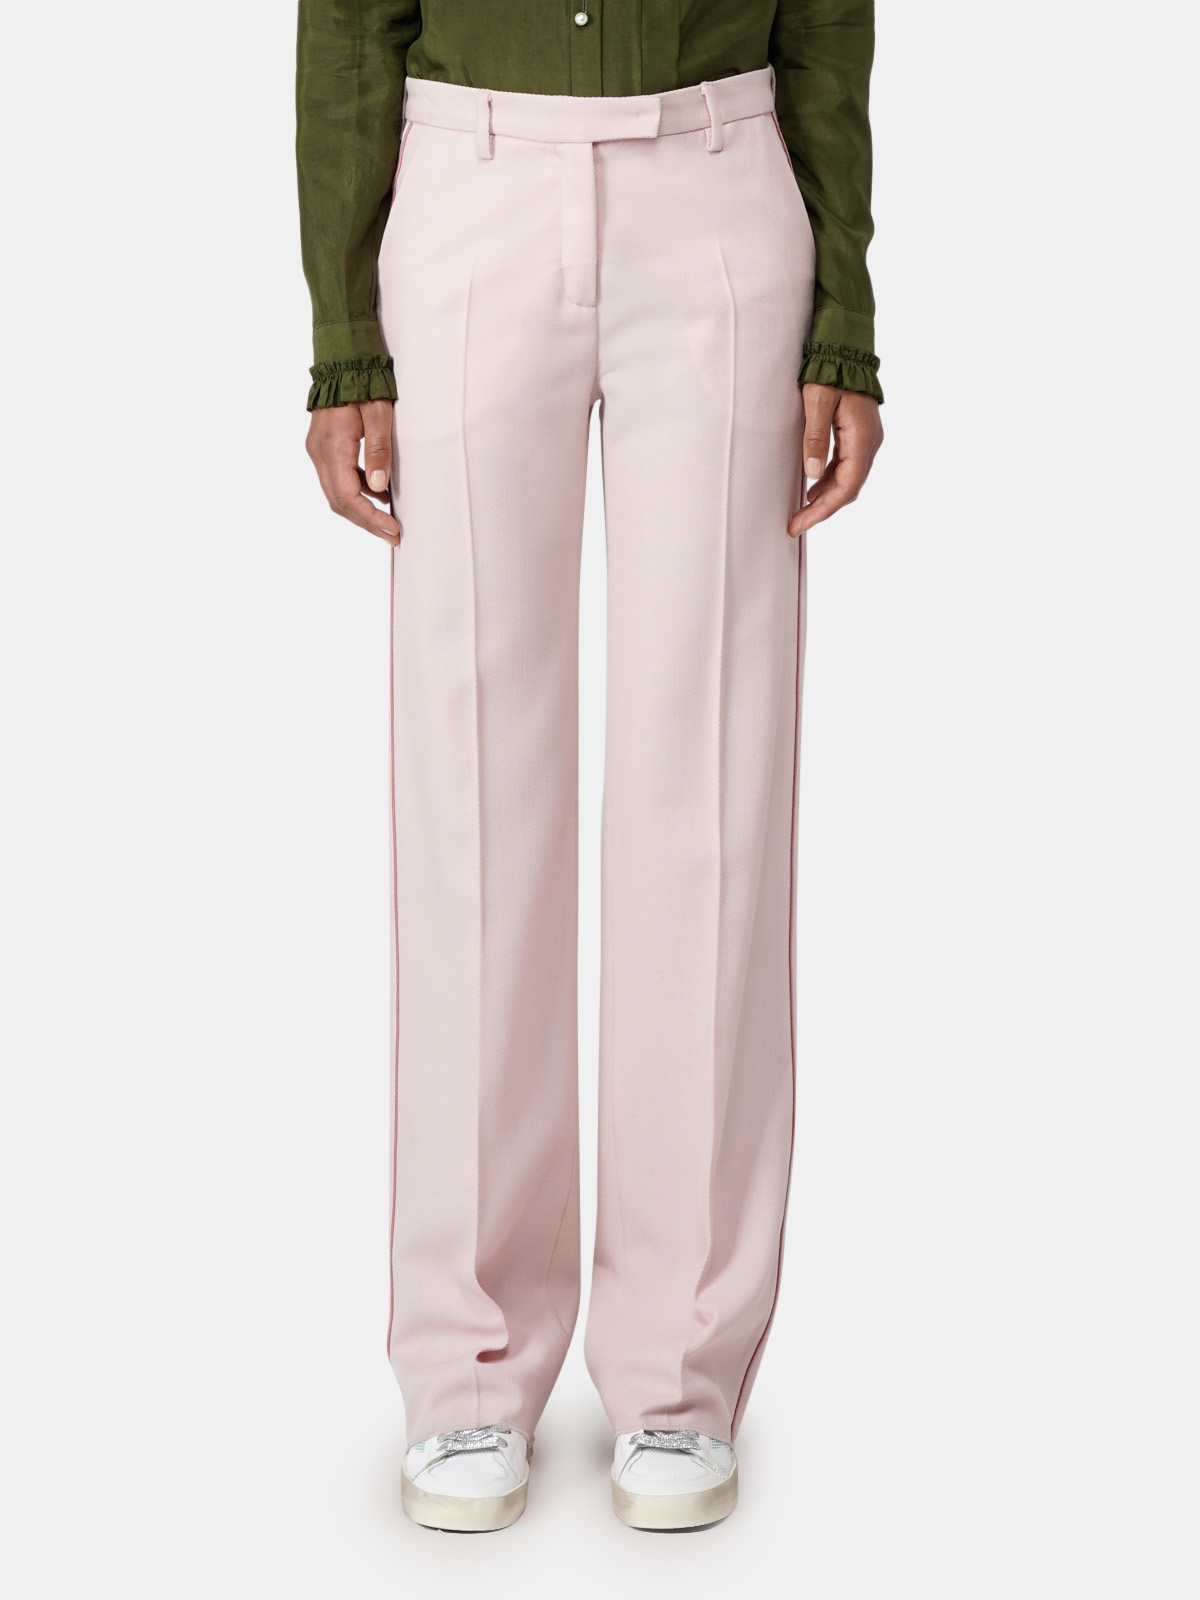 Golden Goose - Amanda trousers with flared hems and contrast piping in